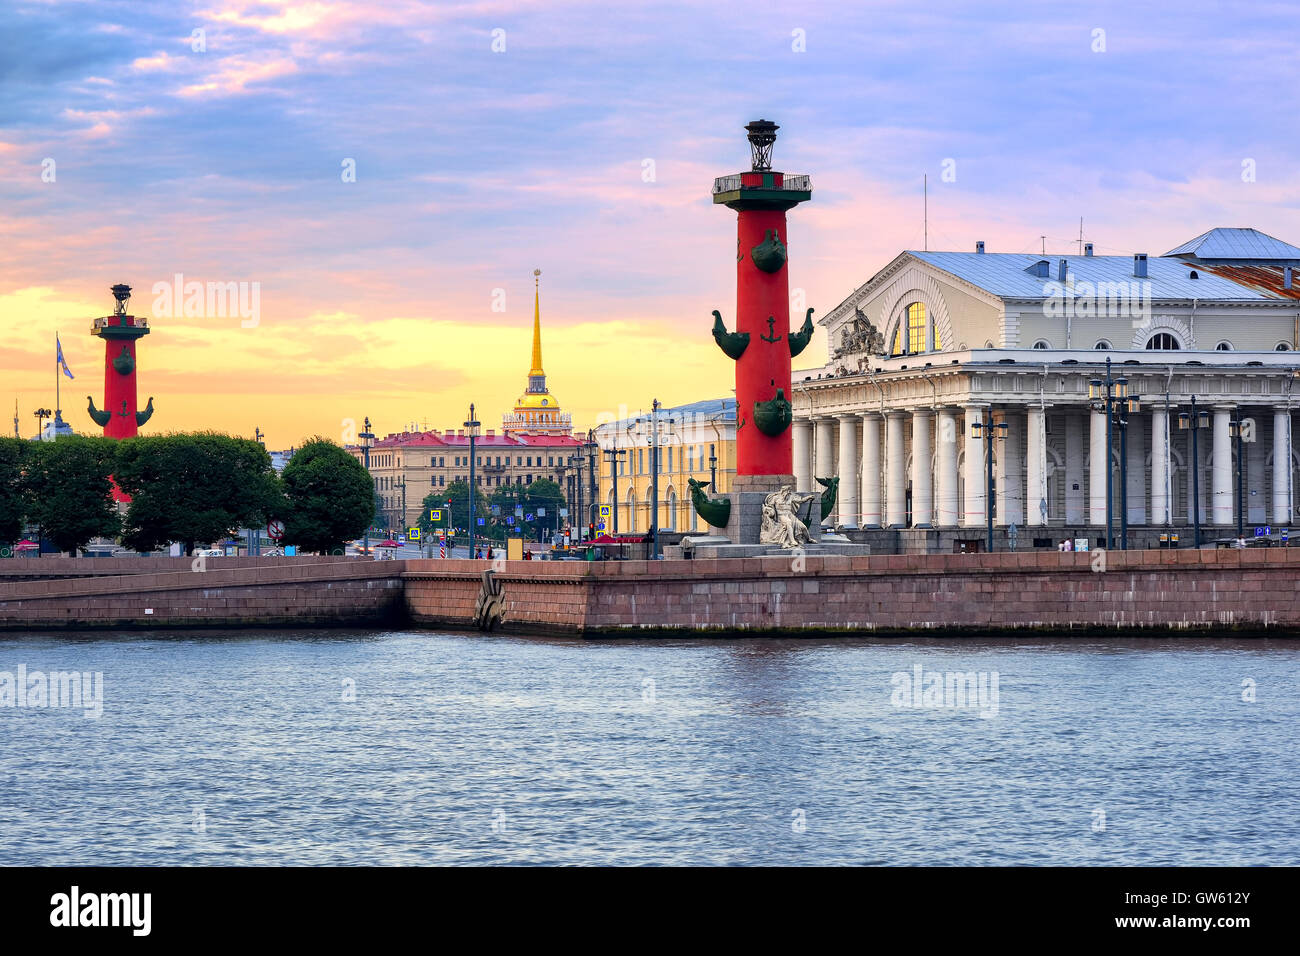 Old Saint Petersburg Stock Exchange, Rostral Columns and golden spire of Admiralty Building at Neva river on sunset, - Stock Image